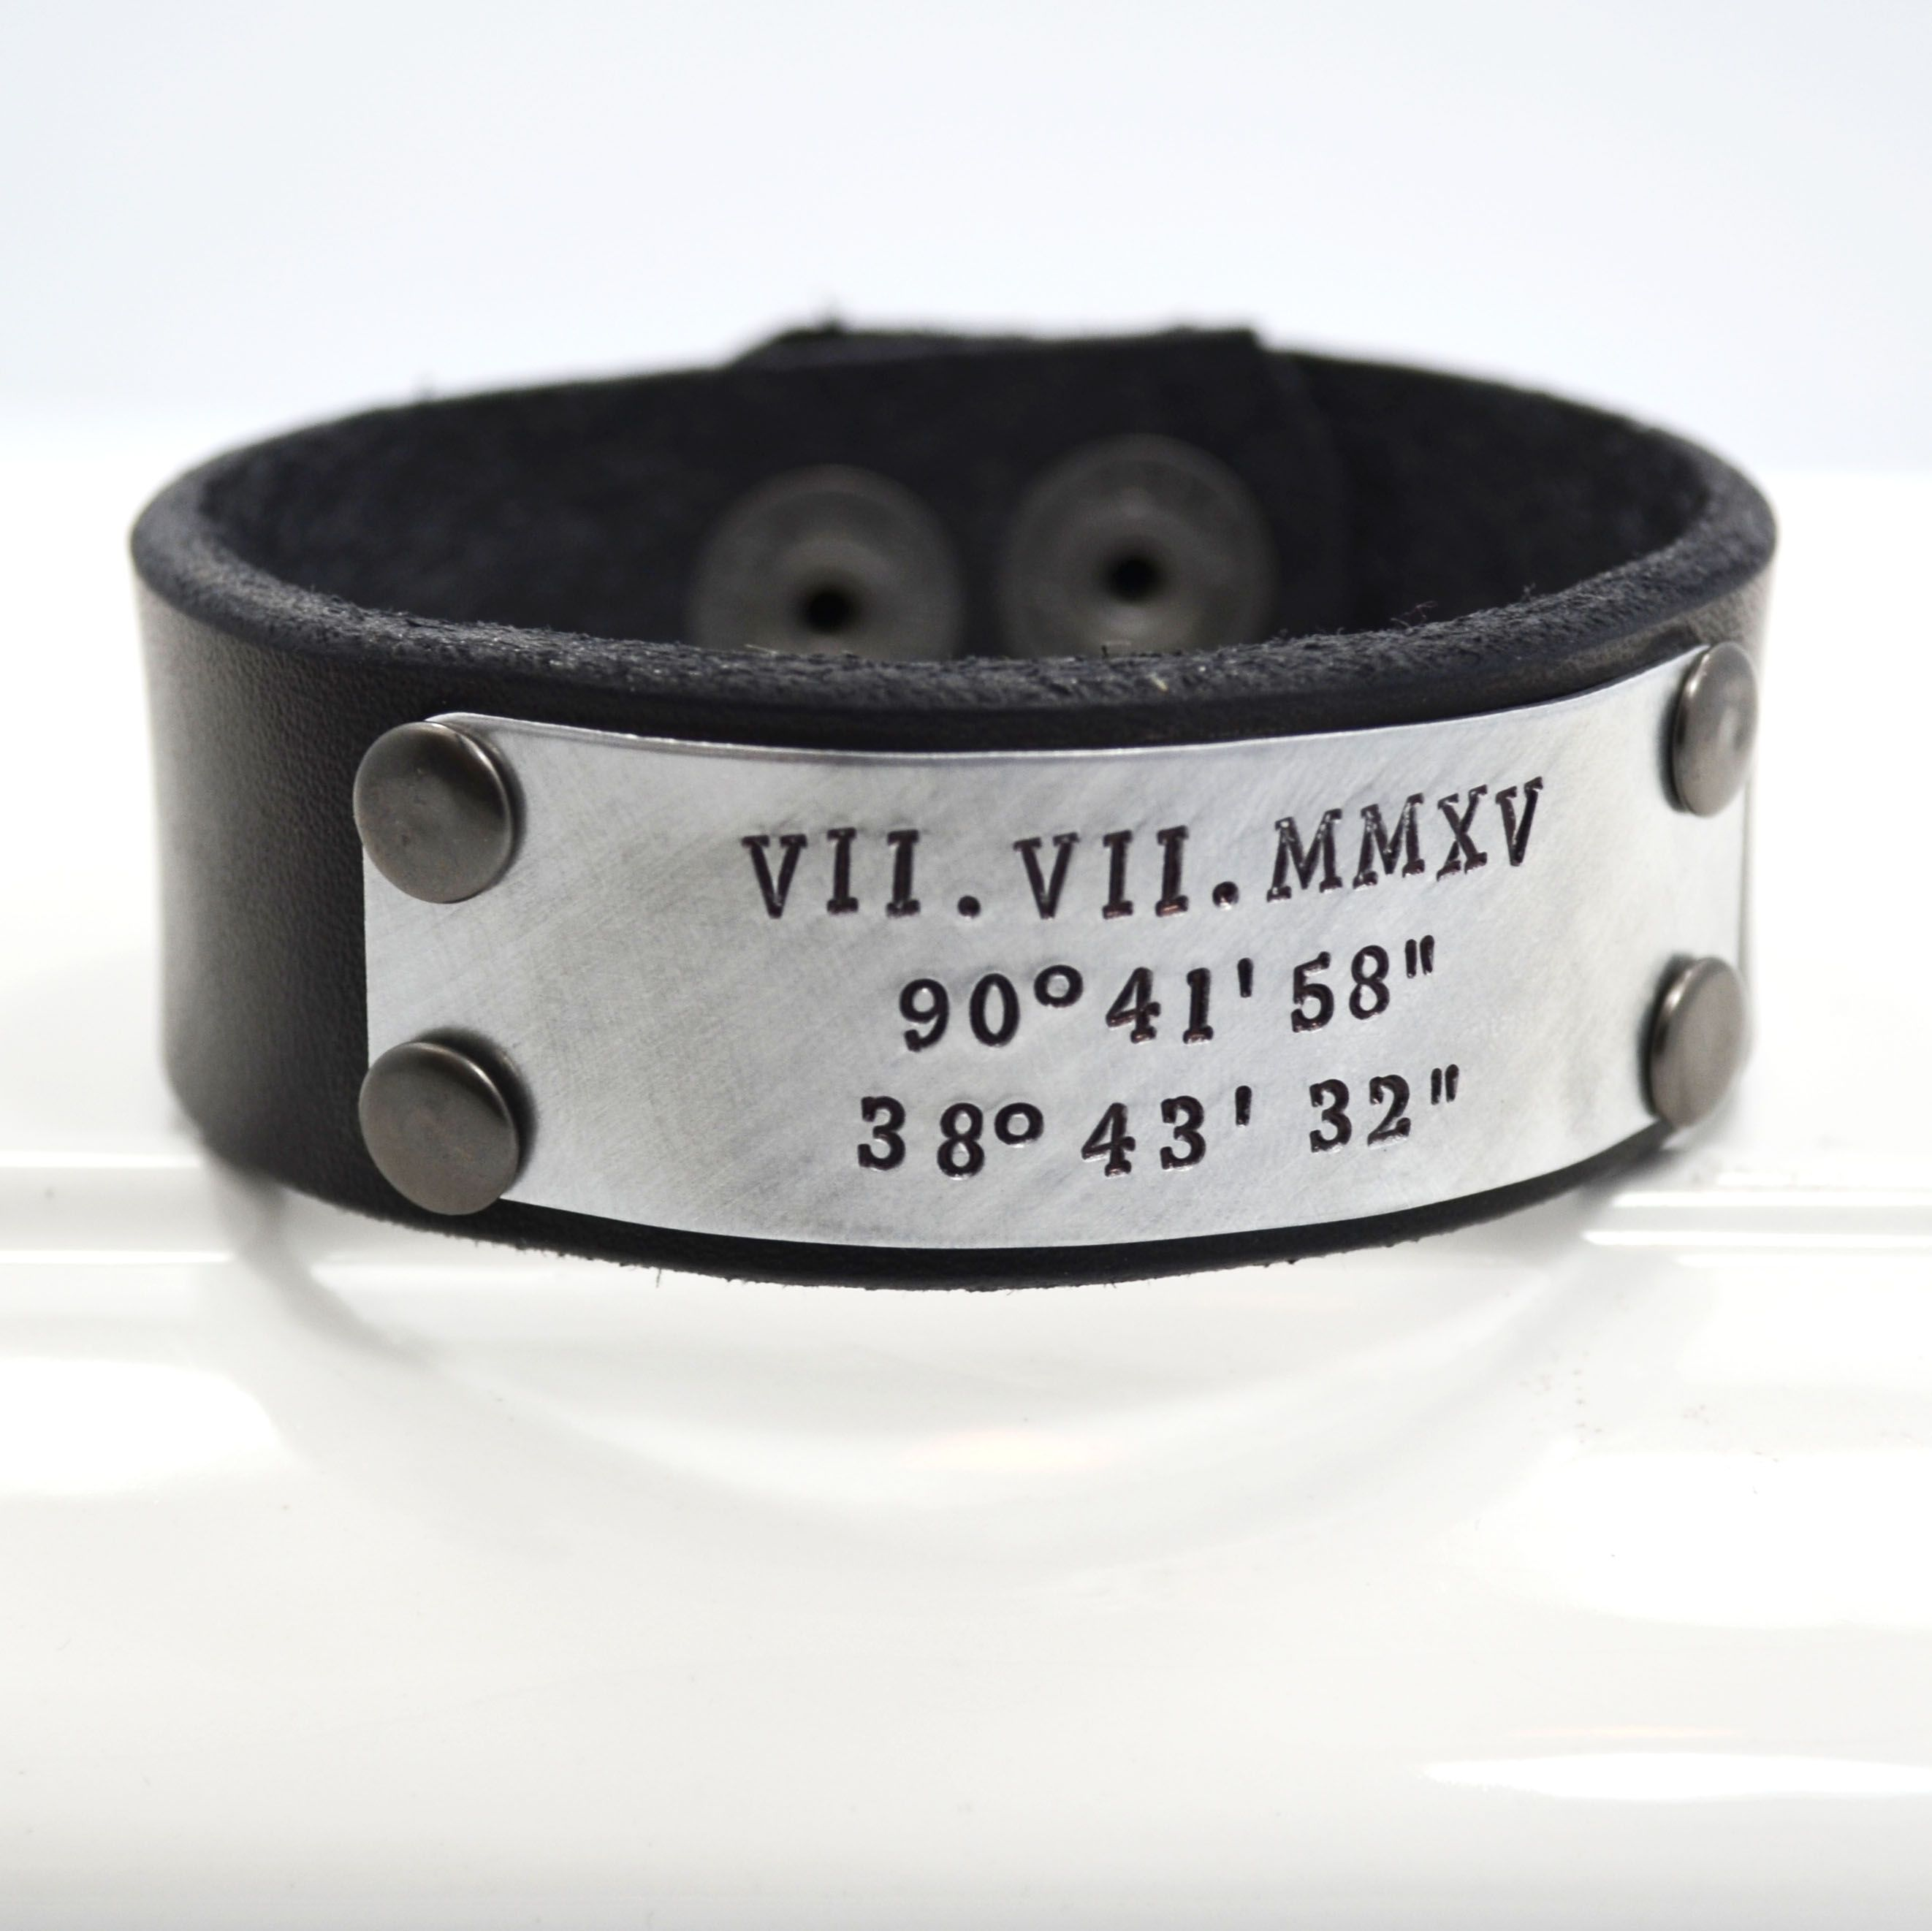 Buy Hand Made Leather Cuff Bracelet For Men Or Women Personalized With  Roman Numerals Dates Or Names, Made To Order From Designme Jewelry   Custommade